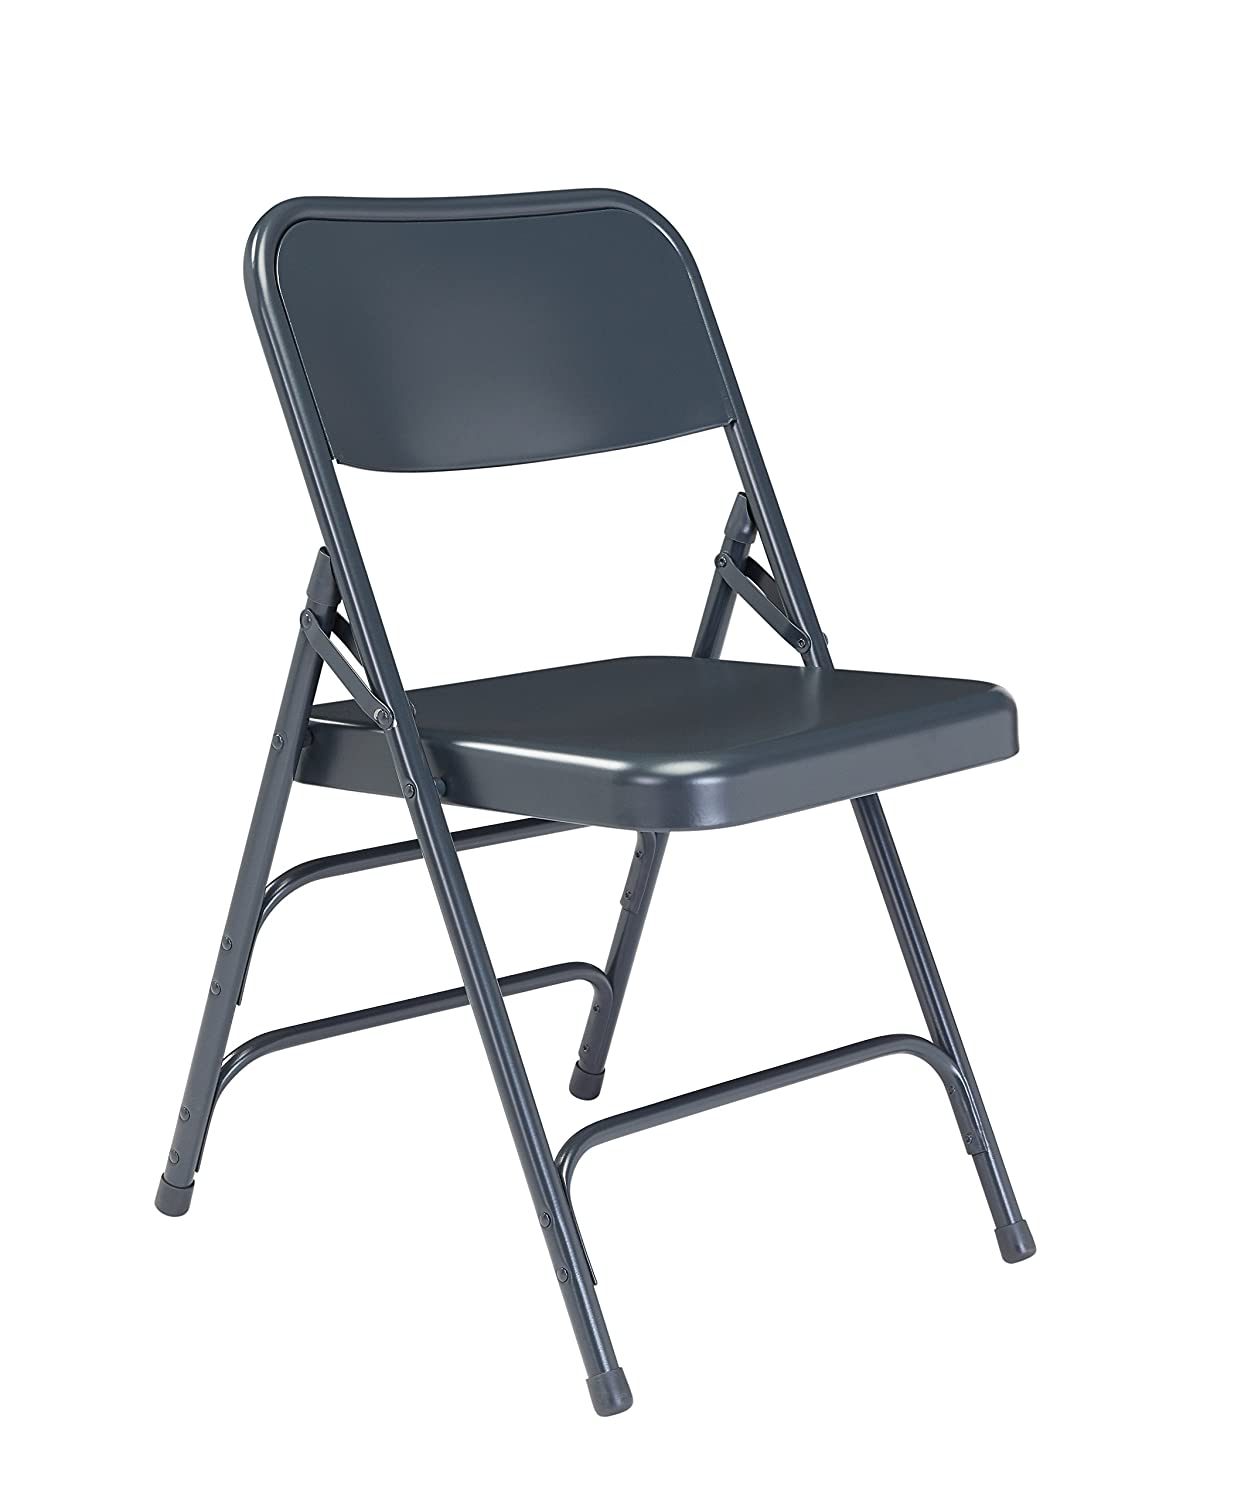 National Public Seating 300 Series All Steel Premium Folding Chair with Triple Brace, 480-Pound Capacity, Char-Blue, Carton of 4 304